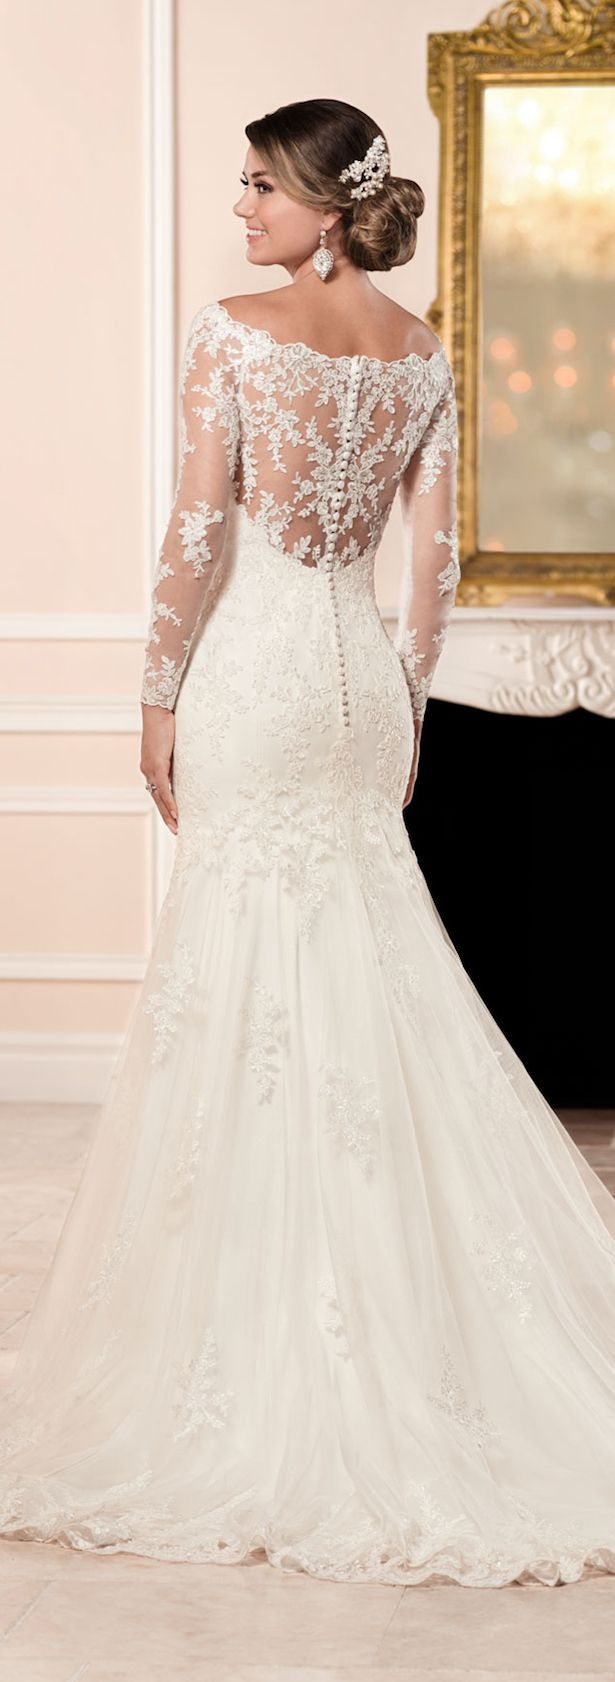 Stella york fall bridal collection wedding dresses